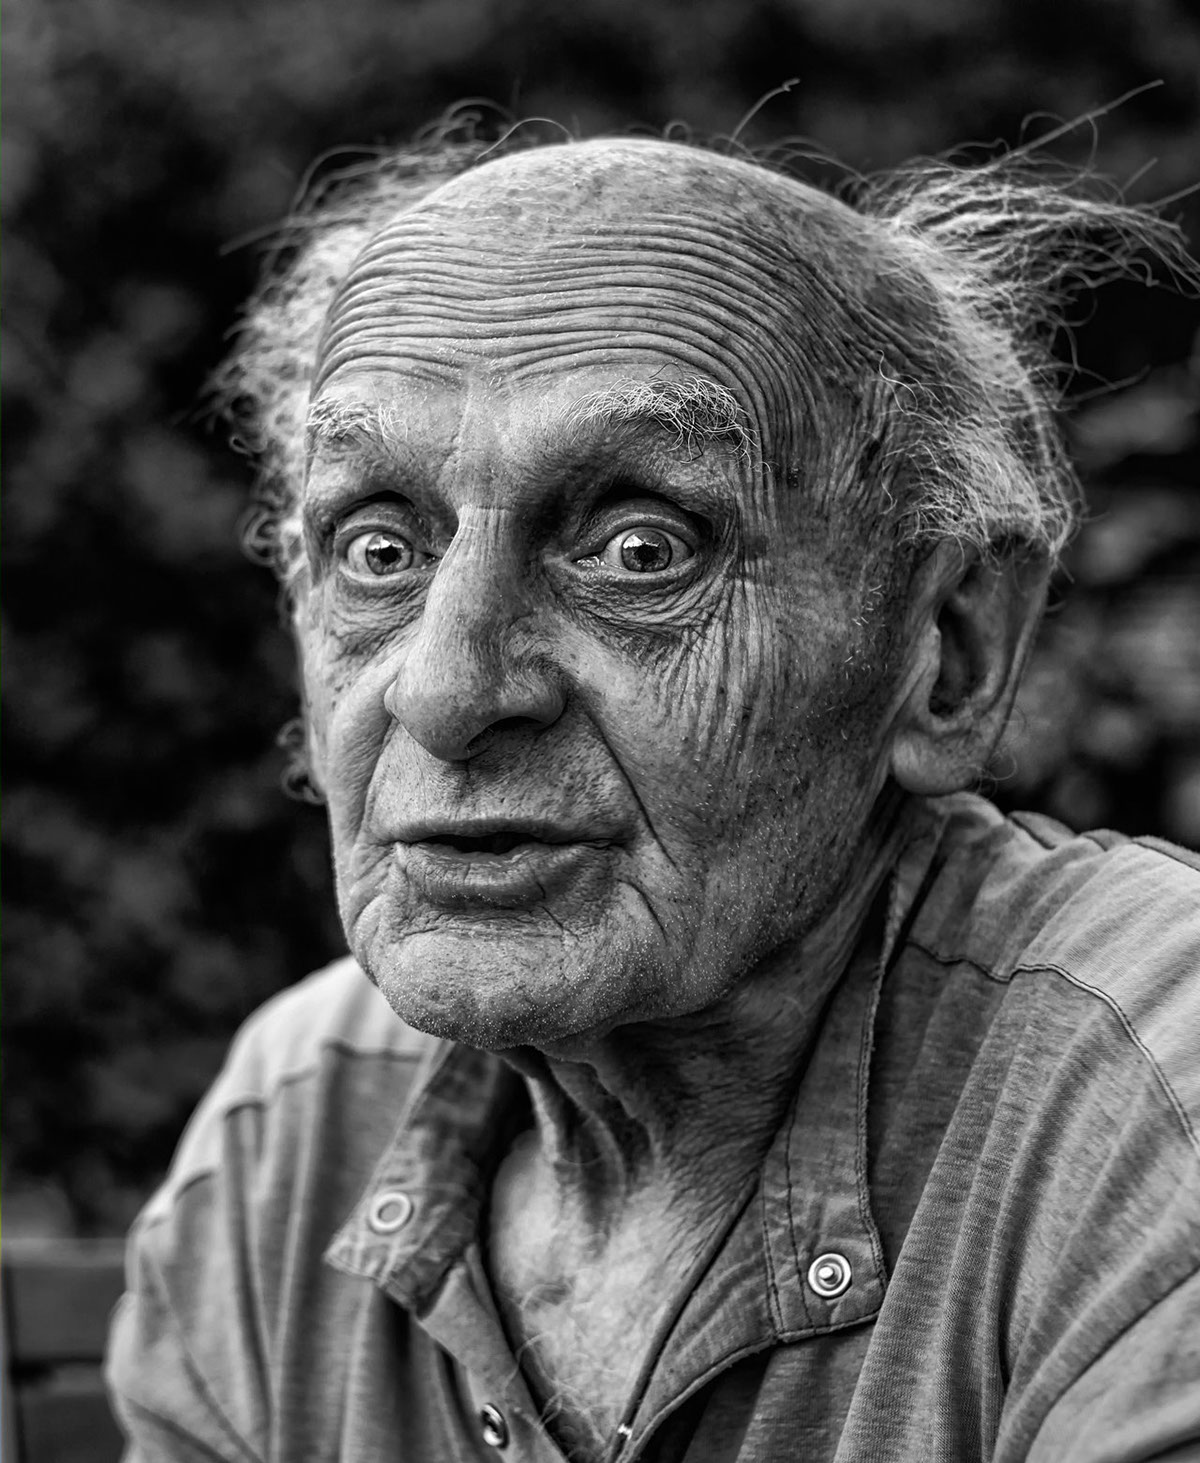 Old man portrait on behance